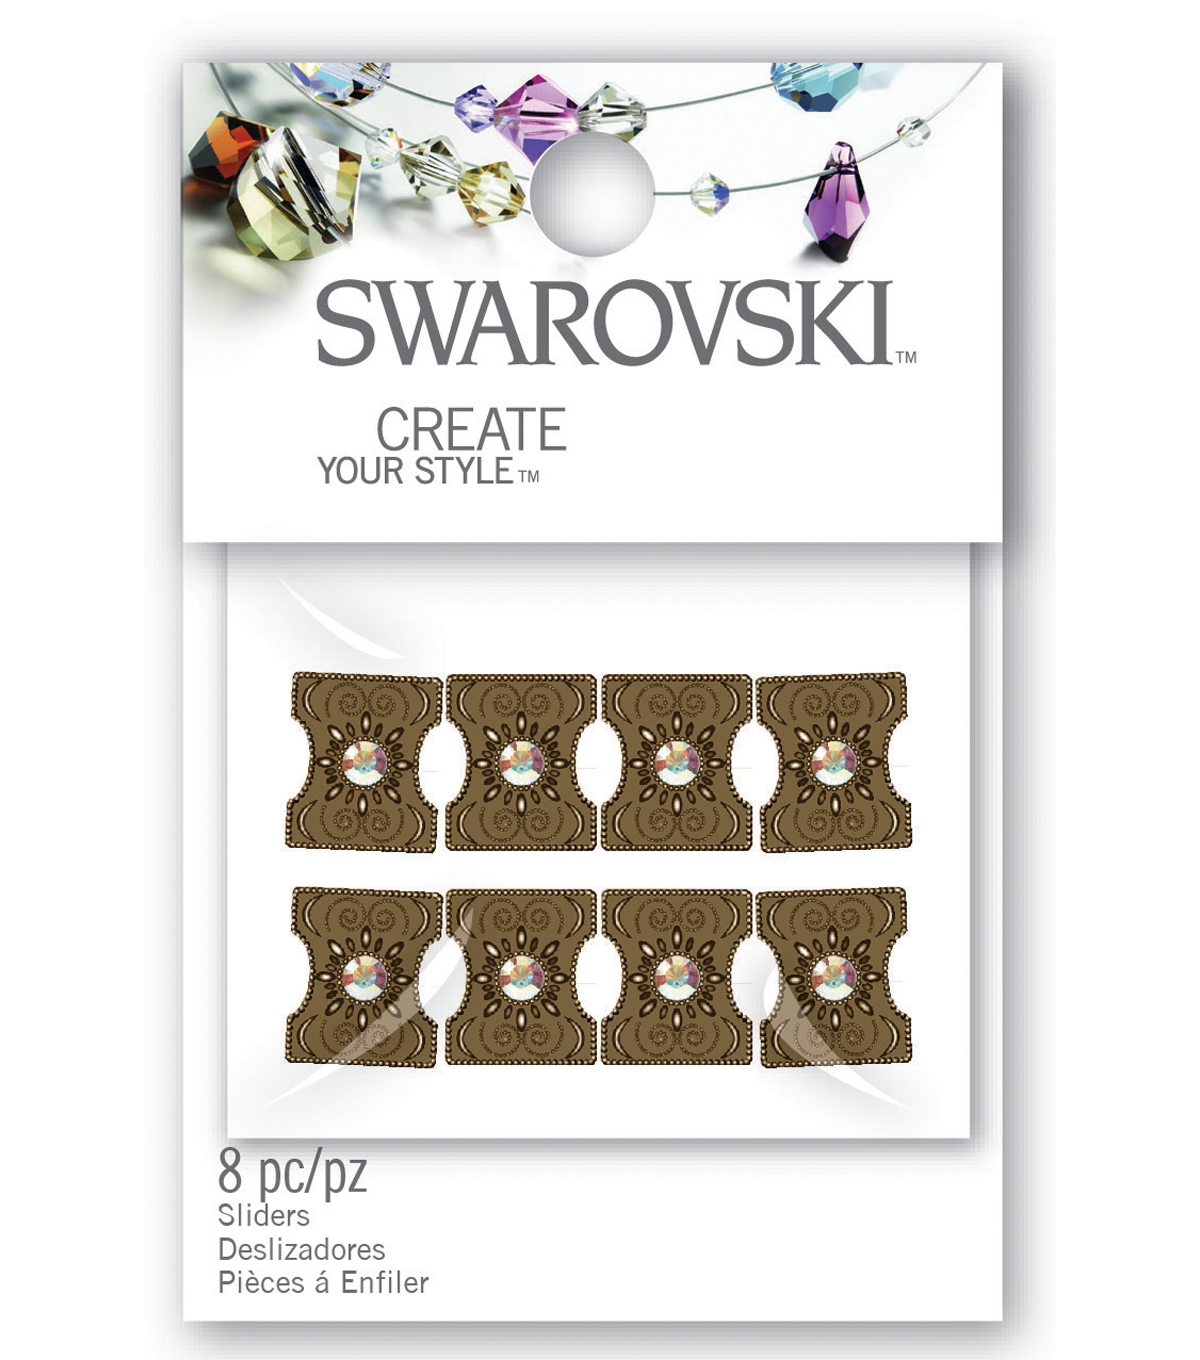 Create Your Style Swarovski Sliders-Aurora Borealis Crystal Portrait 8/pk